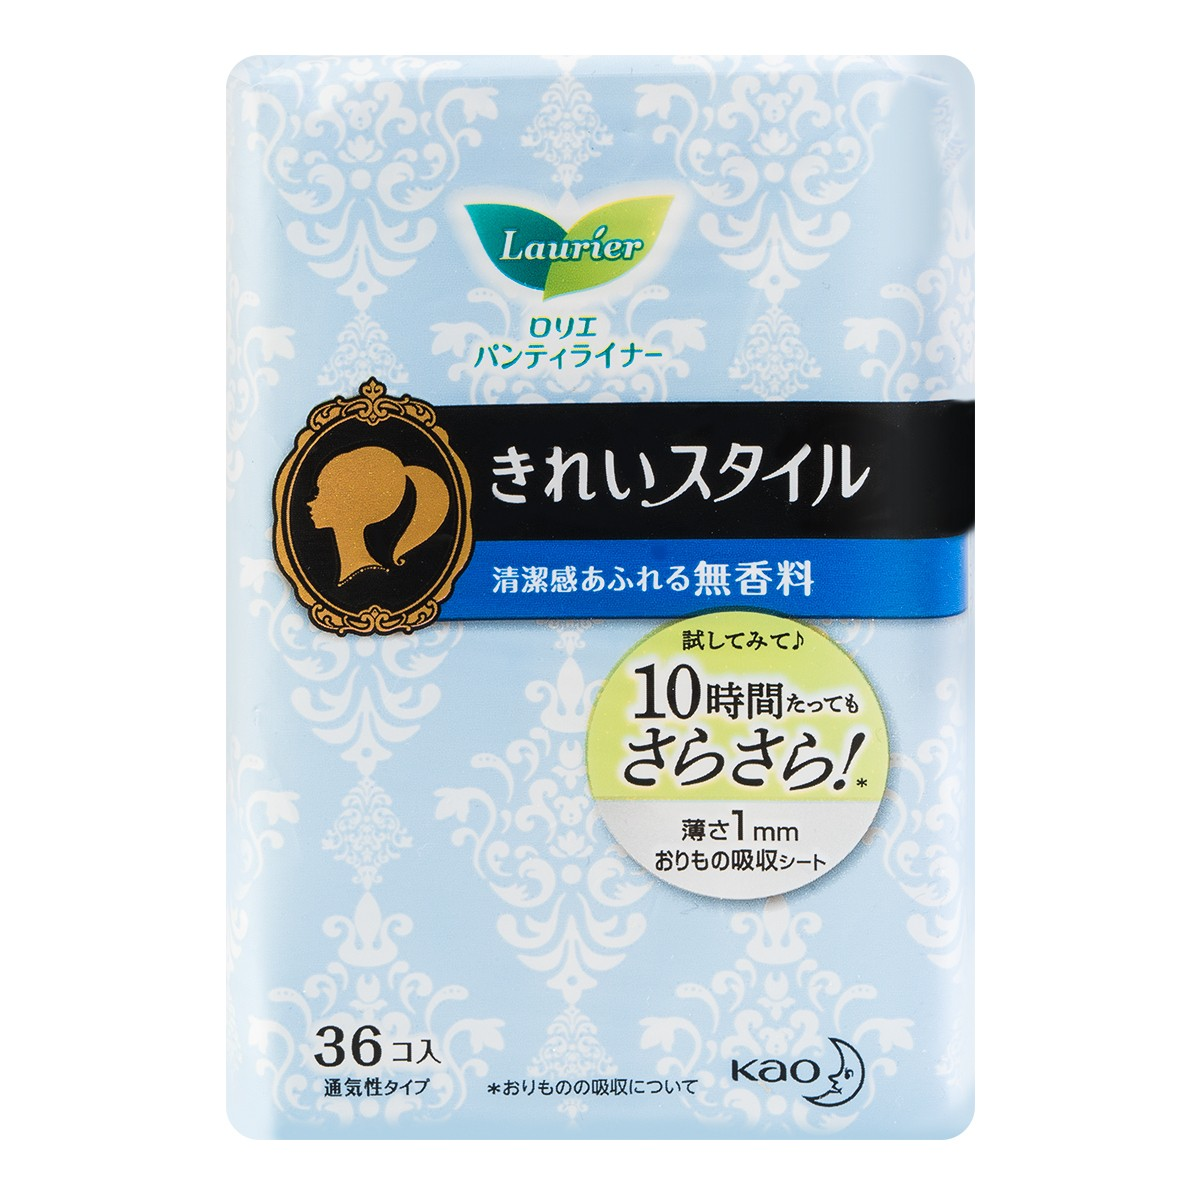 KAO LAURIER Beauty Style Panty Liner Fragrance-Free 14cm 36pads